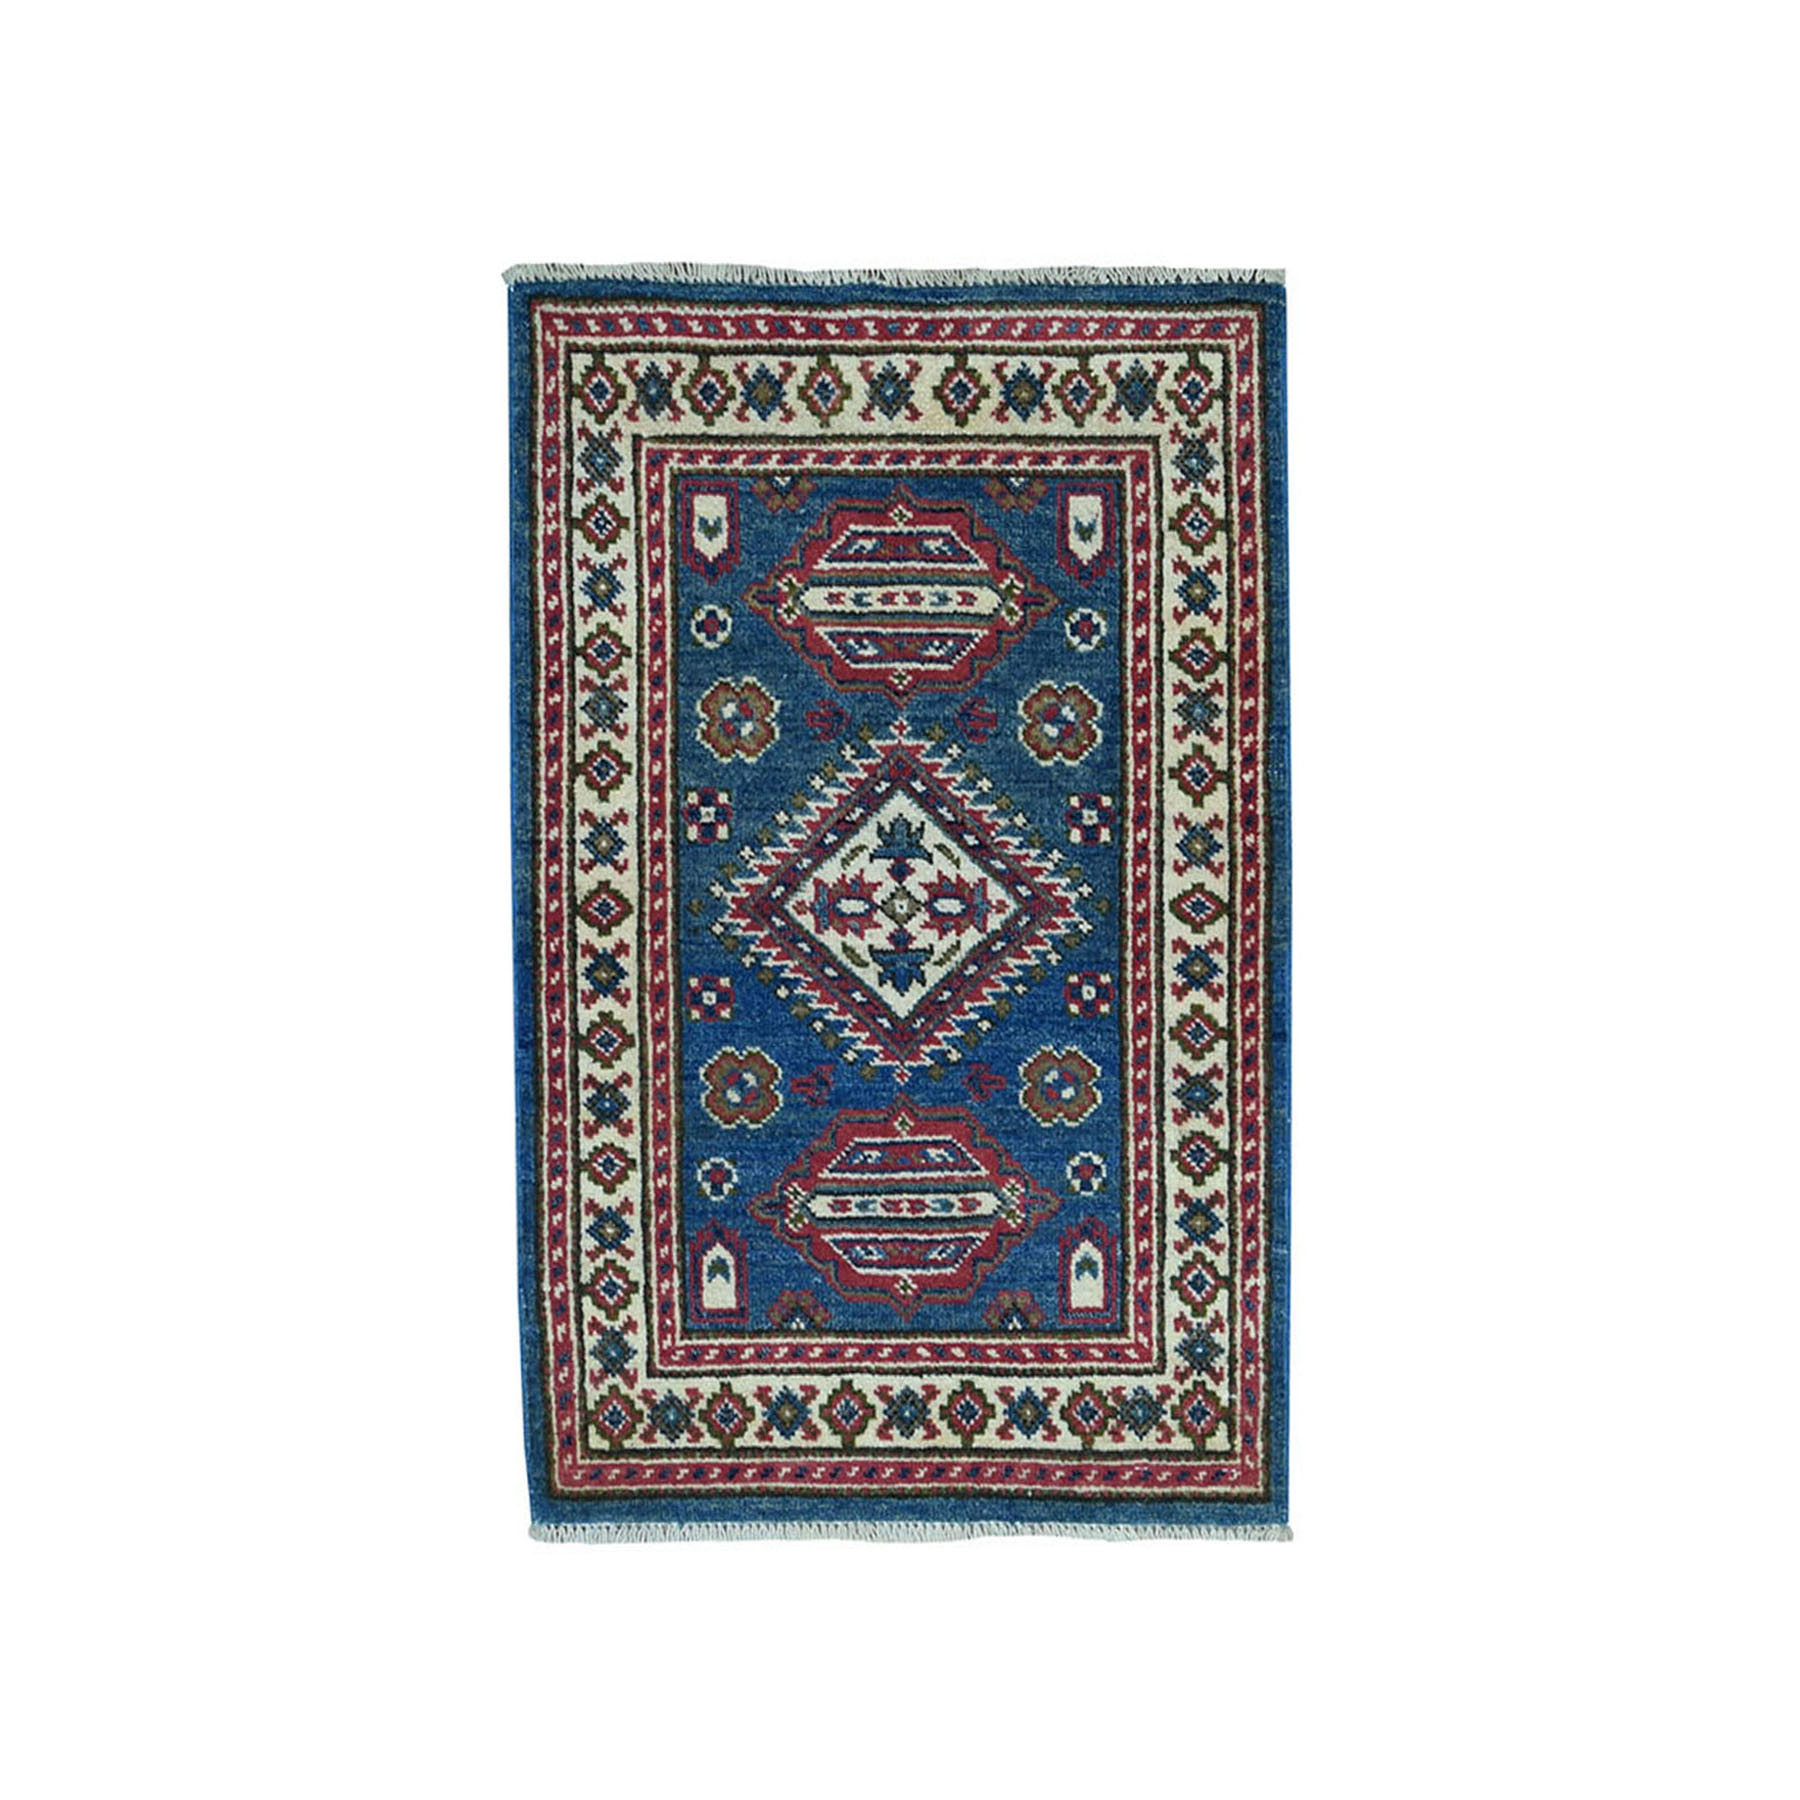 2'x3' Blue Geometric Design Kazak Pure Wool Hand-Knotted Oriental Rug